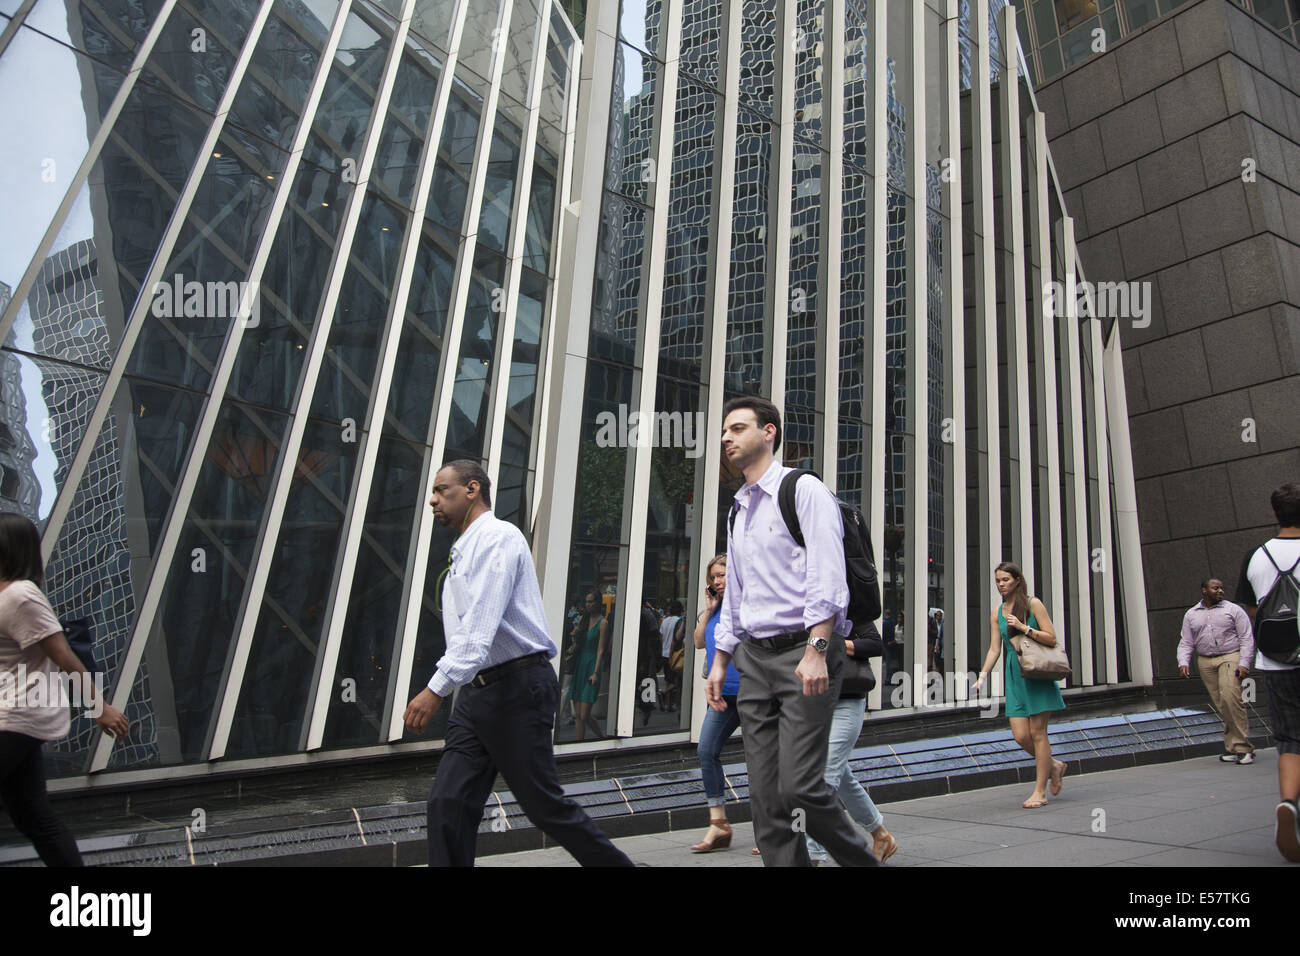 Sidewalk along E. 42nd St. in Manhattan, NYC. - Stock Image